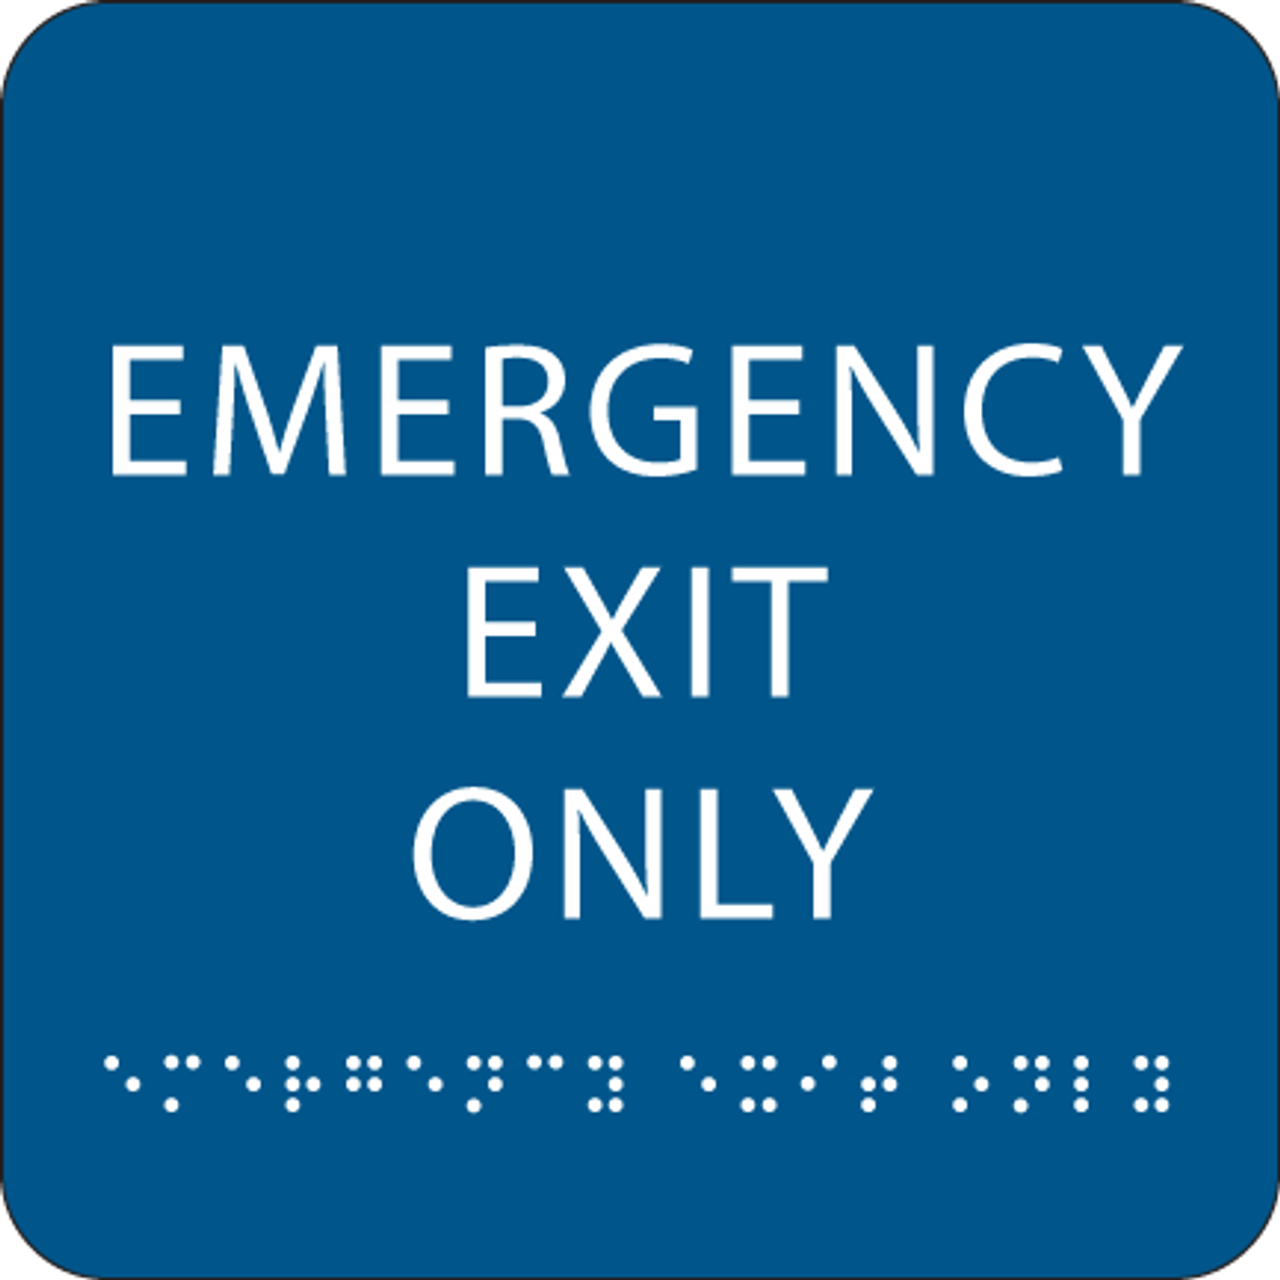 Blue Emergency Exit Only Braille Sign